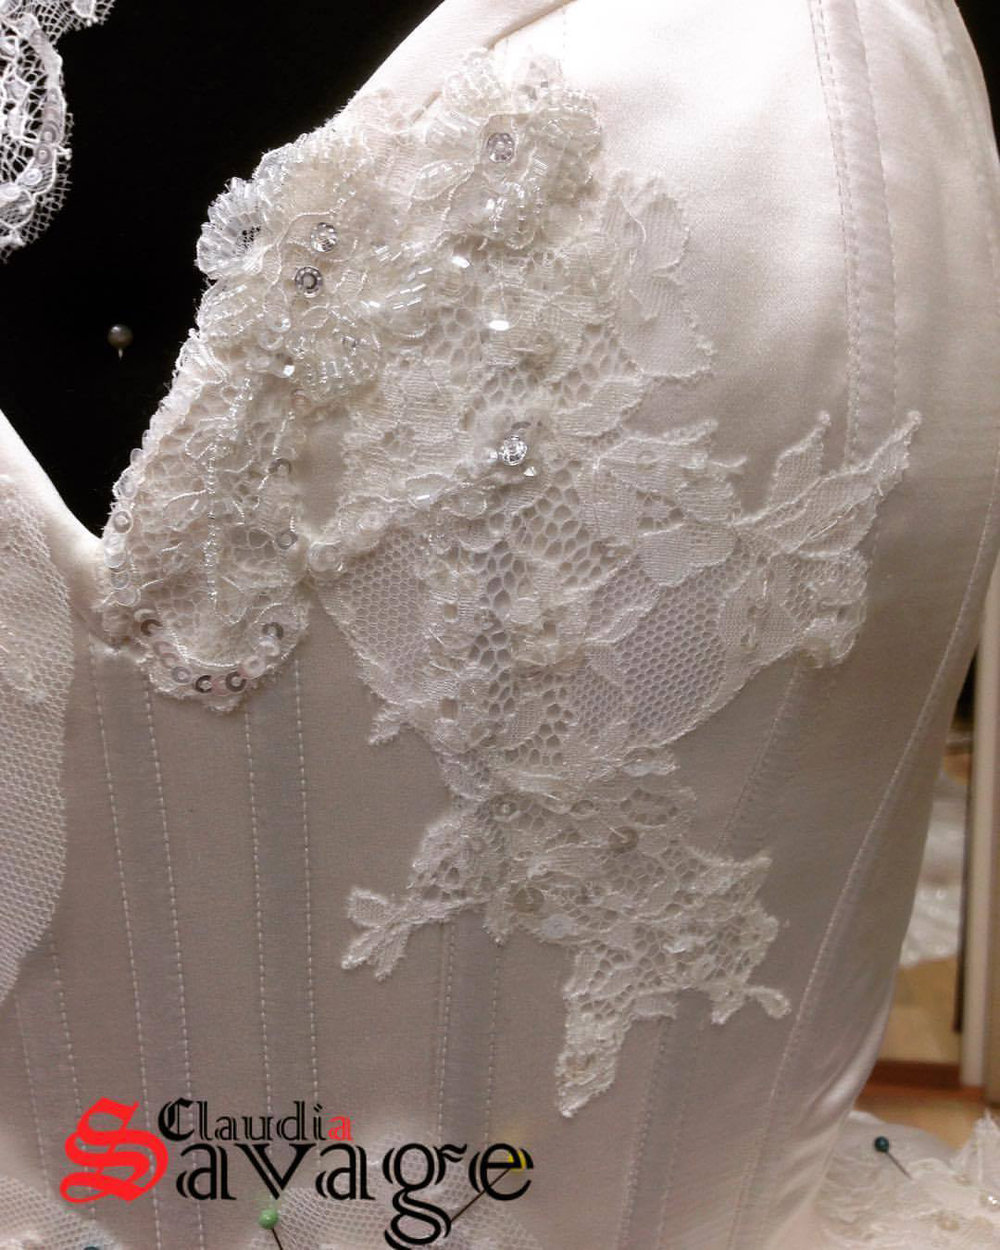 Hand stitched beginnings of lace applique on the corset bodice.